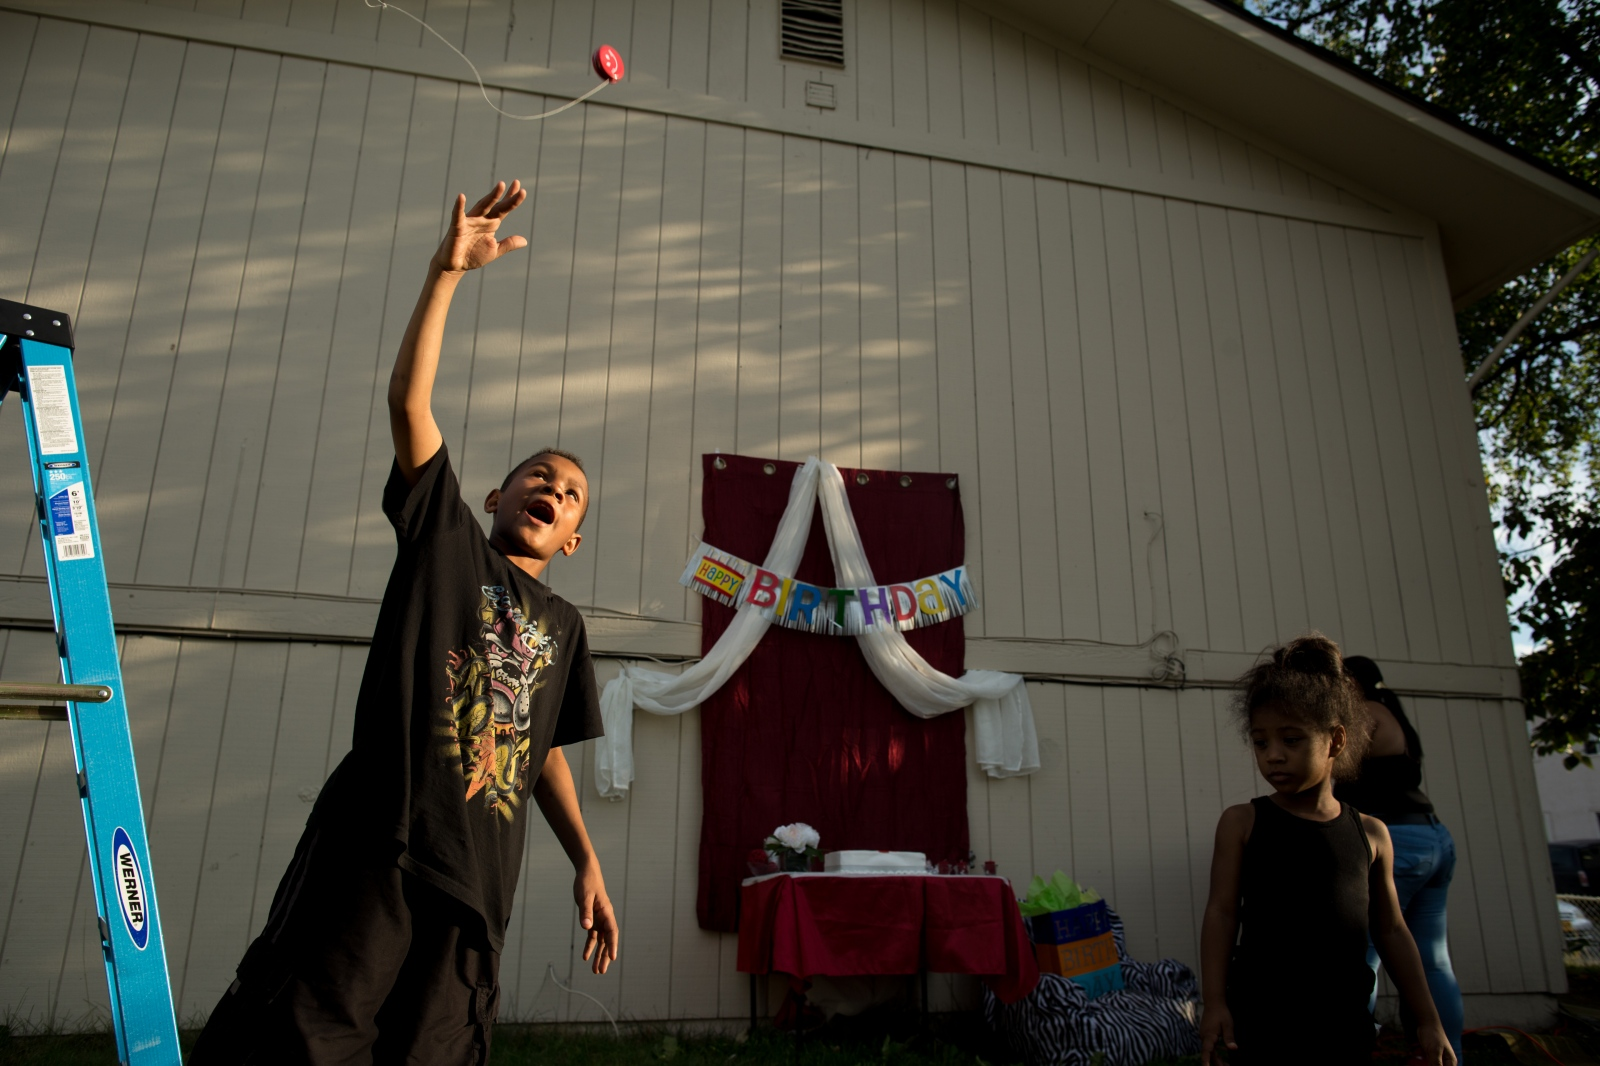 Wayne Rodriguez, 10, tosses a yo-yo into the air while family and friends prepare for his uncle's birthday party in Mountain View.